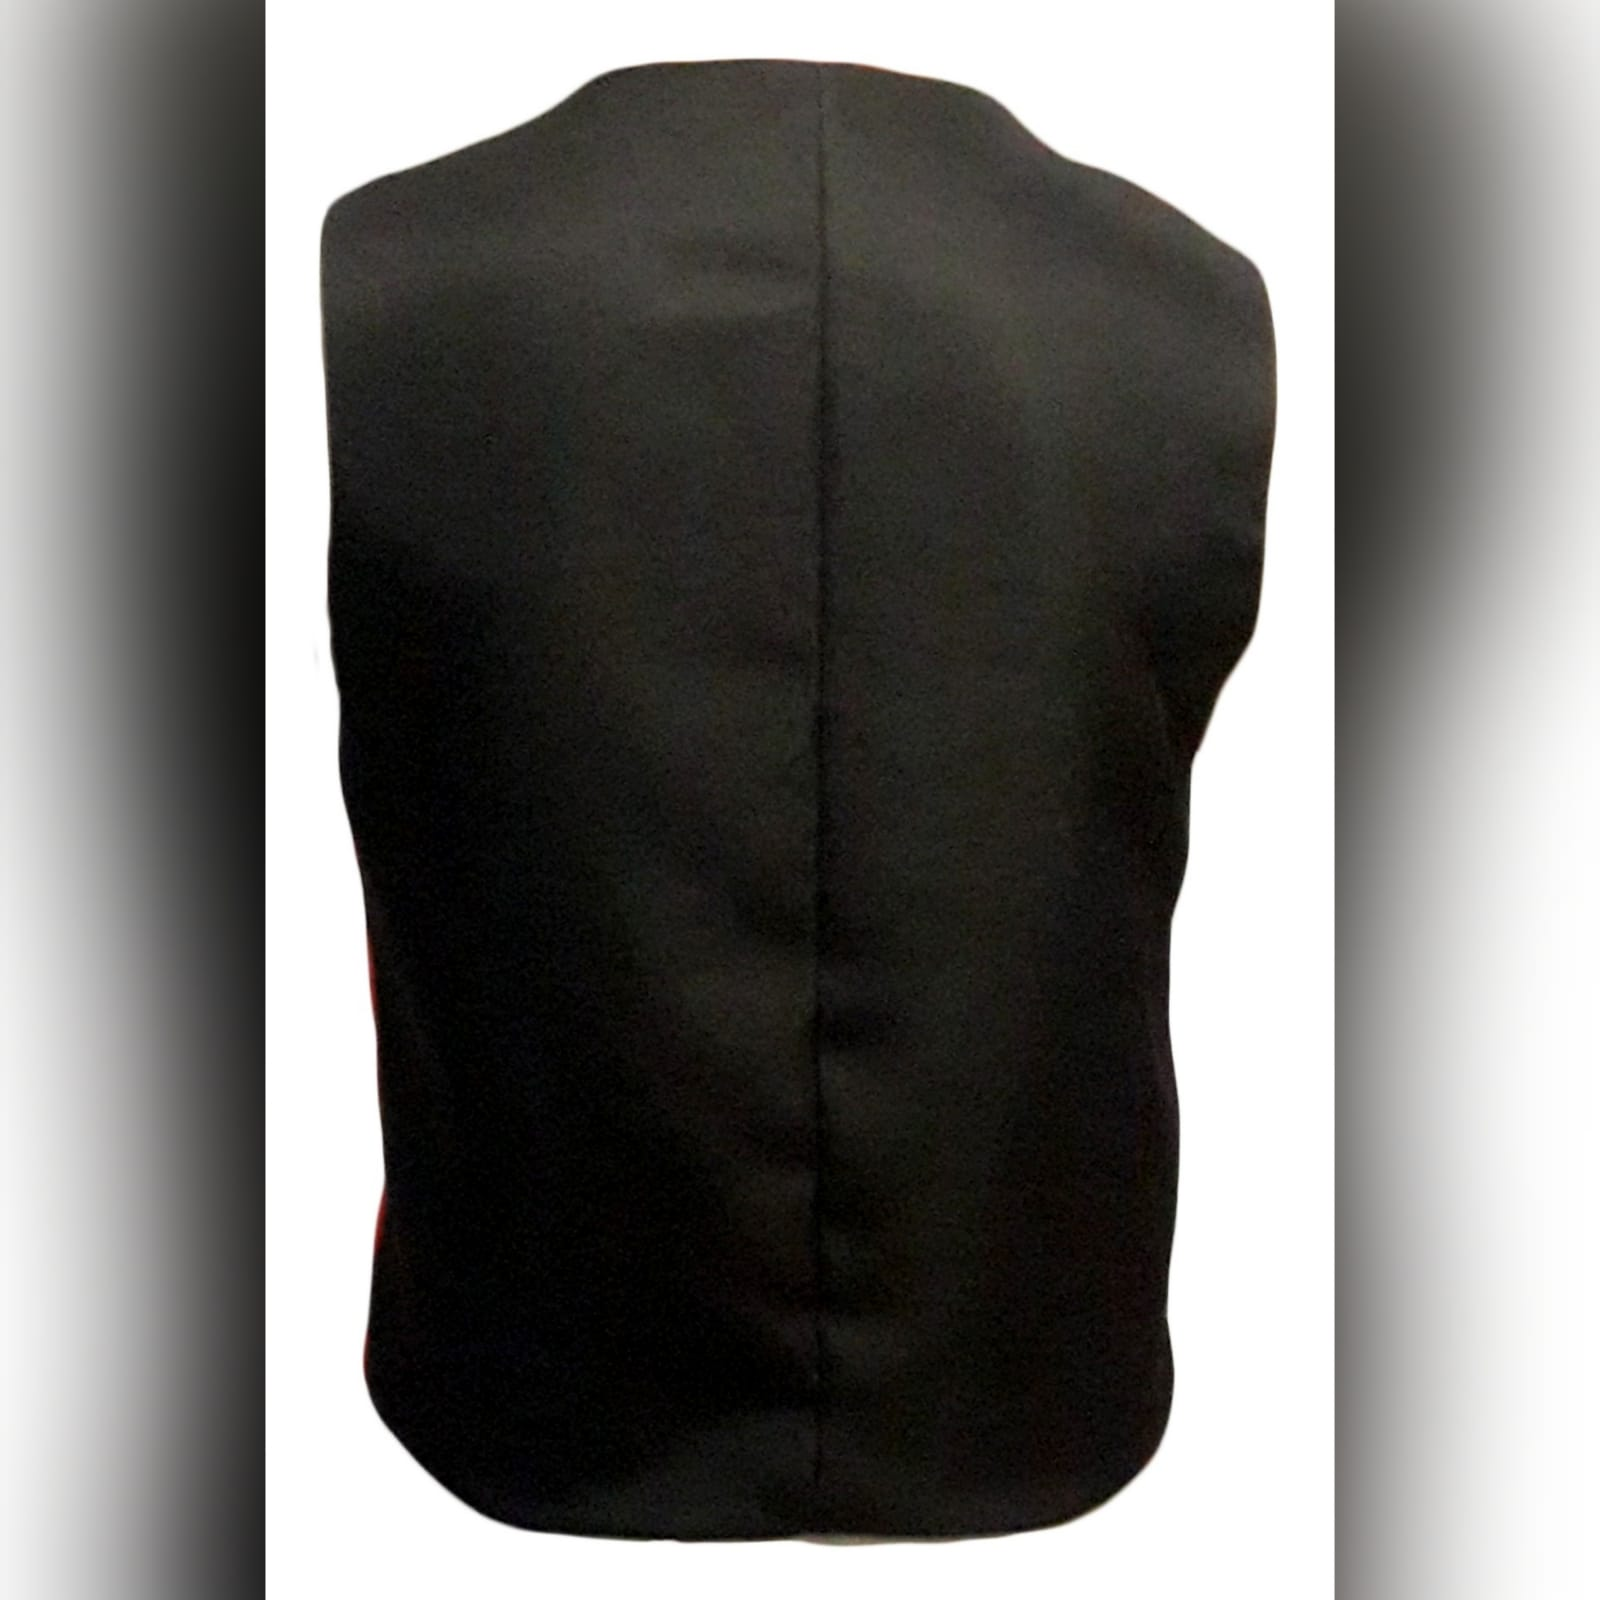 South african flag mens waistcoat 2 south african flag mens waistcoat couriered to the usa.